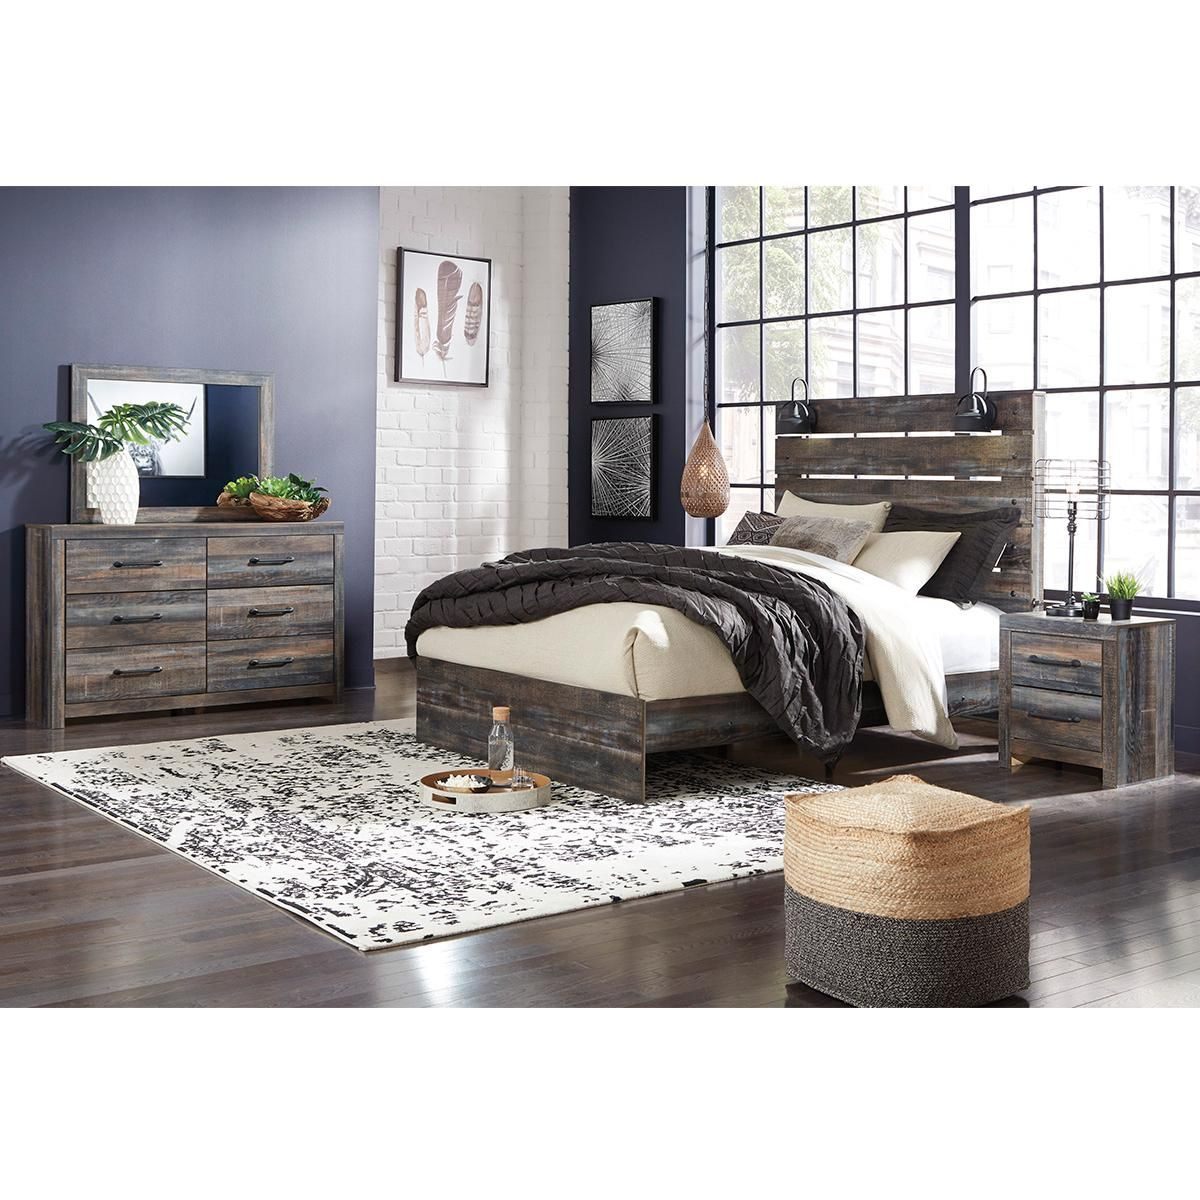 Signature Design by Ashley Drystan Queen Panel Bed in